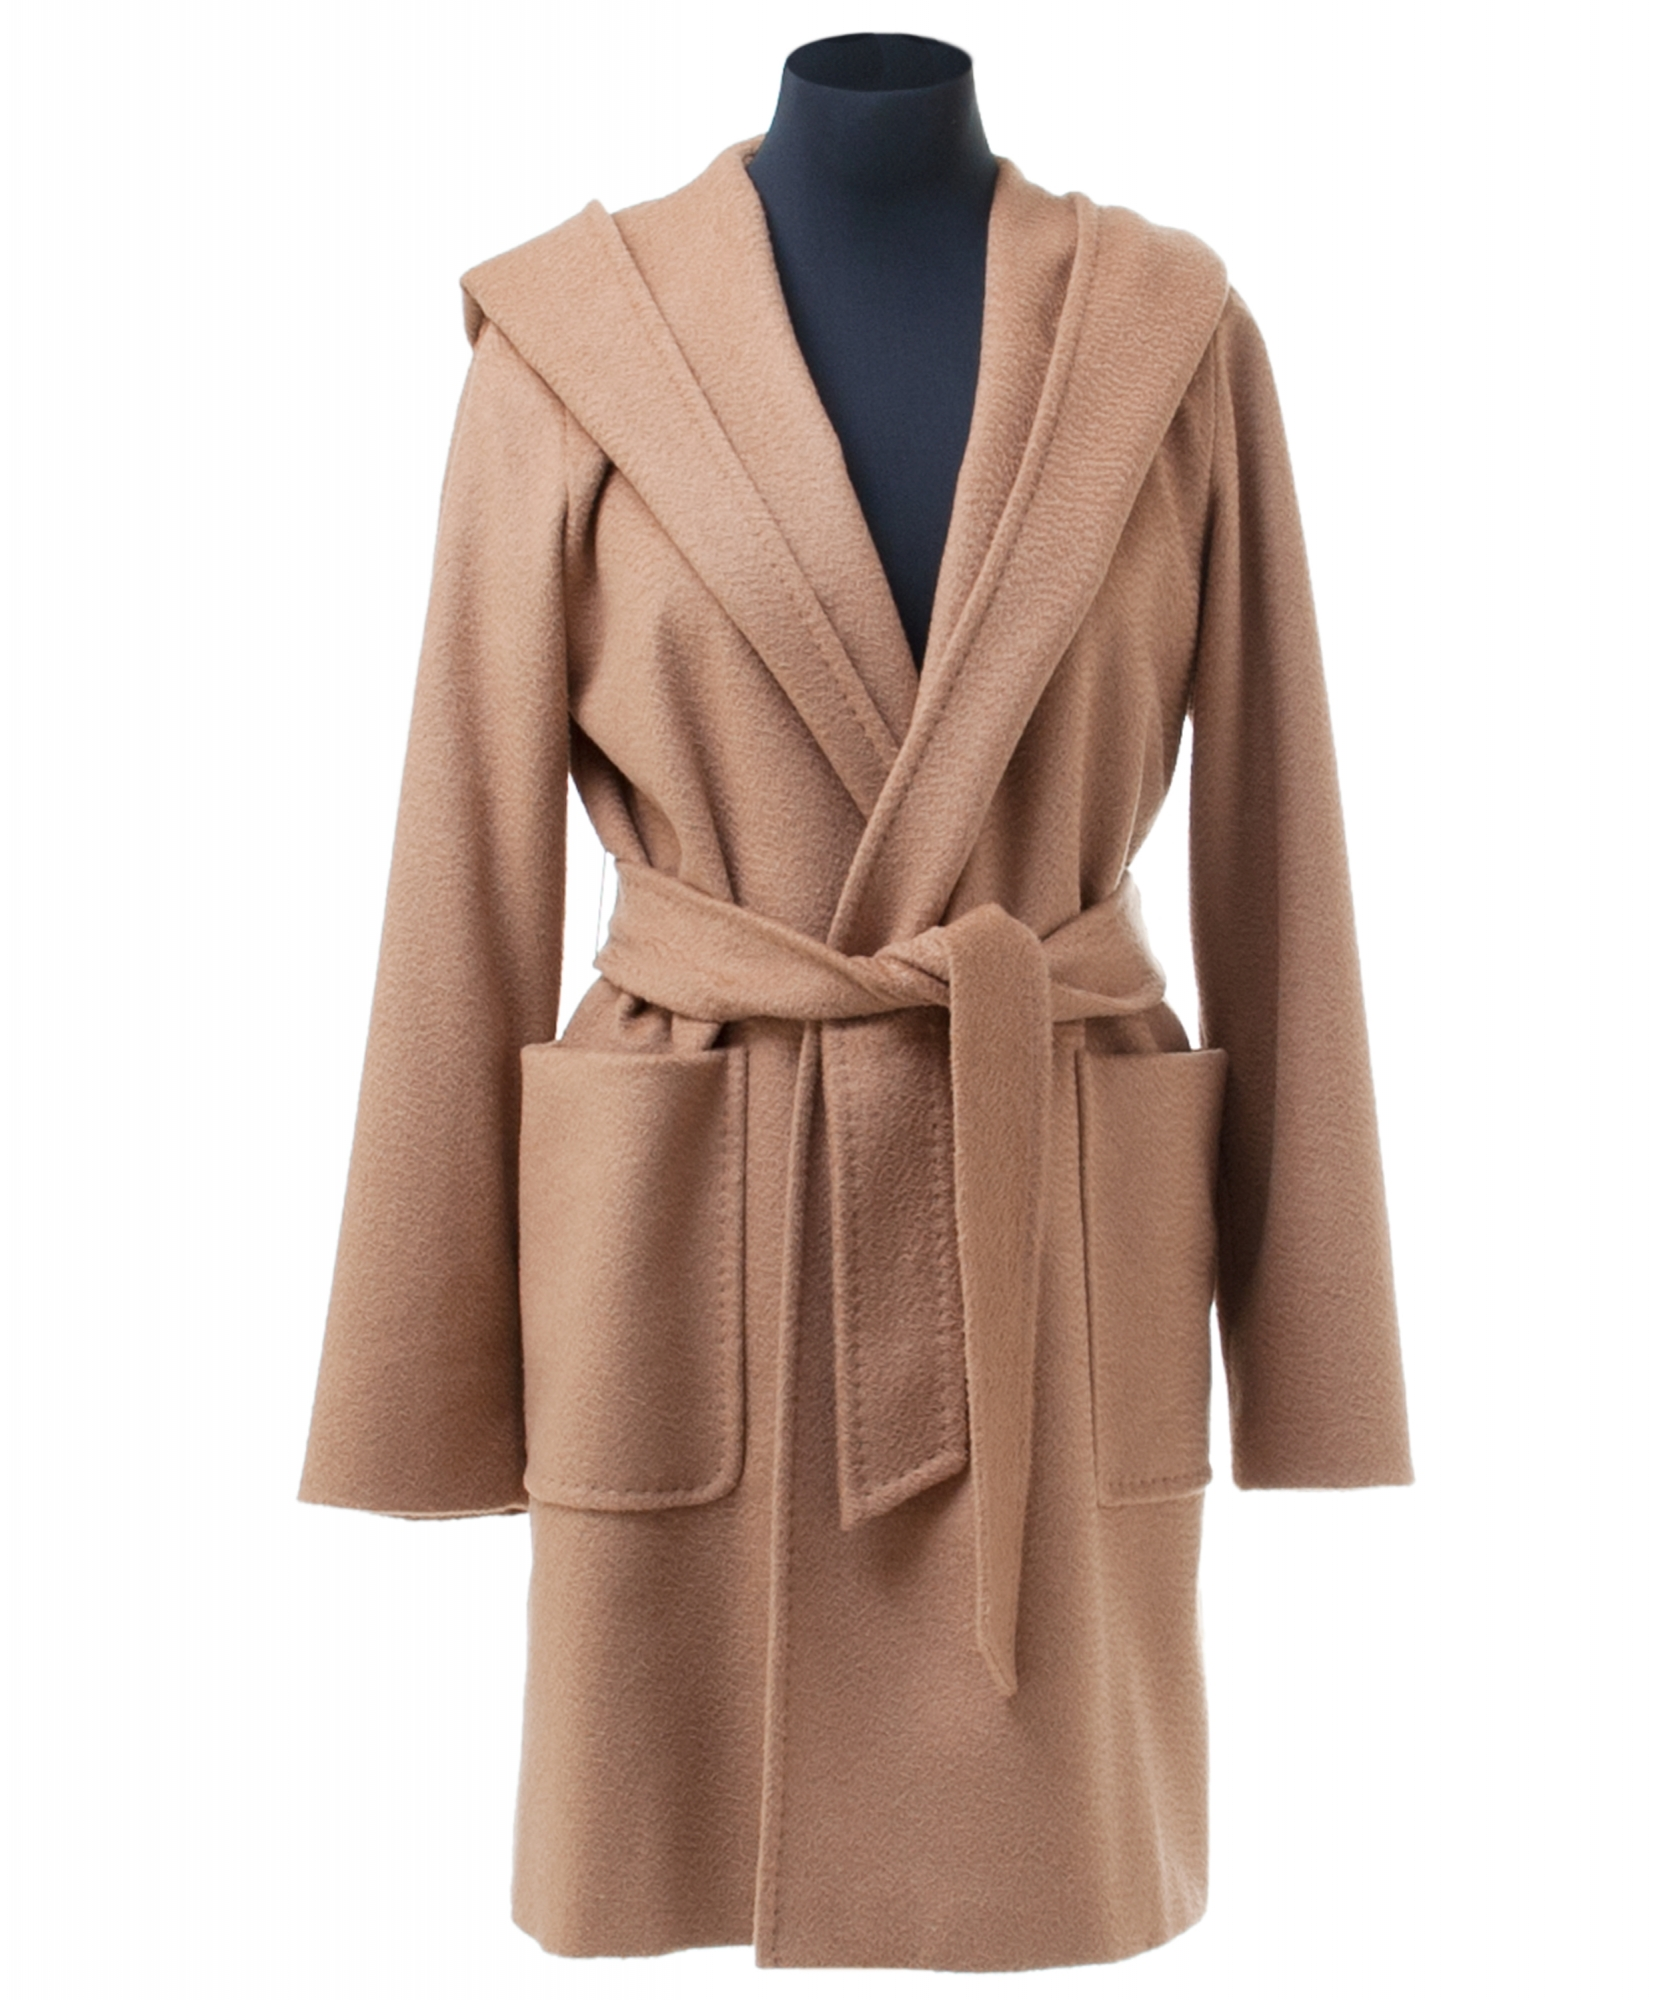 32bda4253f642 Max Mara Rialto Hooded Camel Hair Wrap Coat